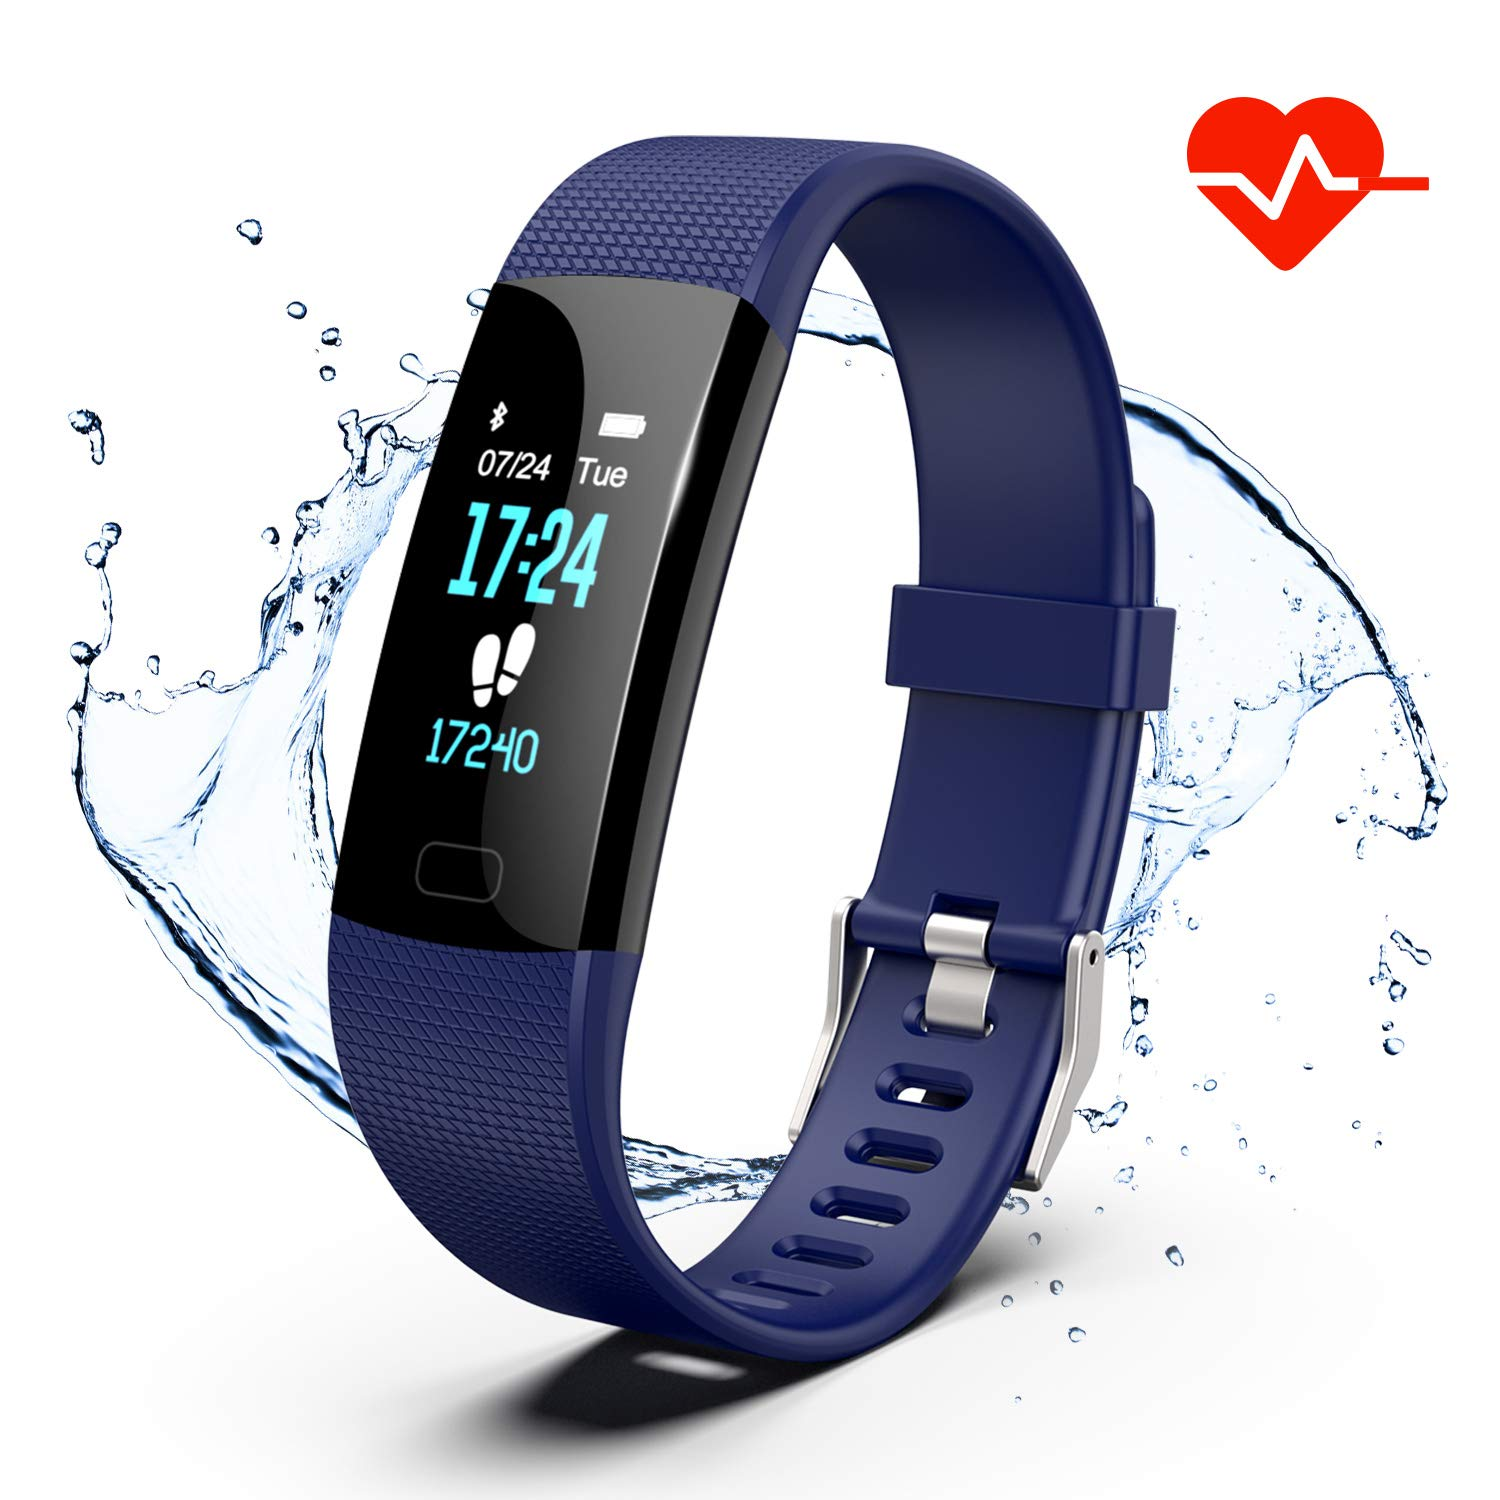 Fitness Tracker, Color Screen Activity Tracker Watch with Heart Rate Monitor, Pedometer IP67 Waterproof Sleep Monitor Step Counter for Android & iPhone (Blue)